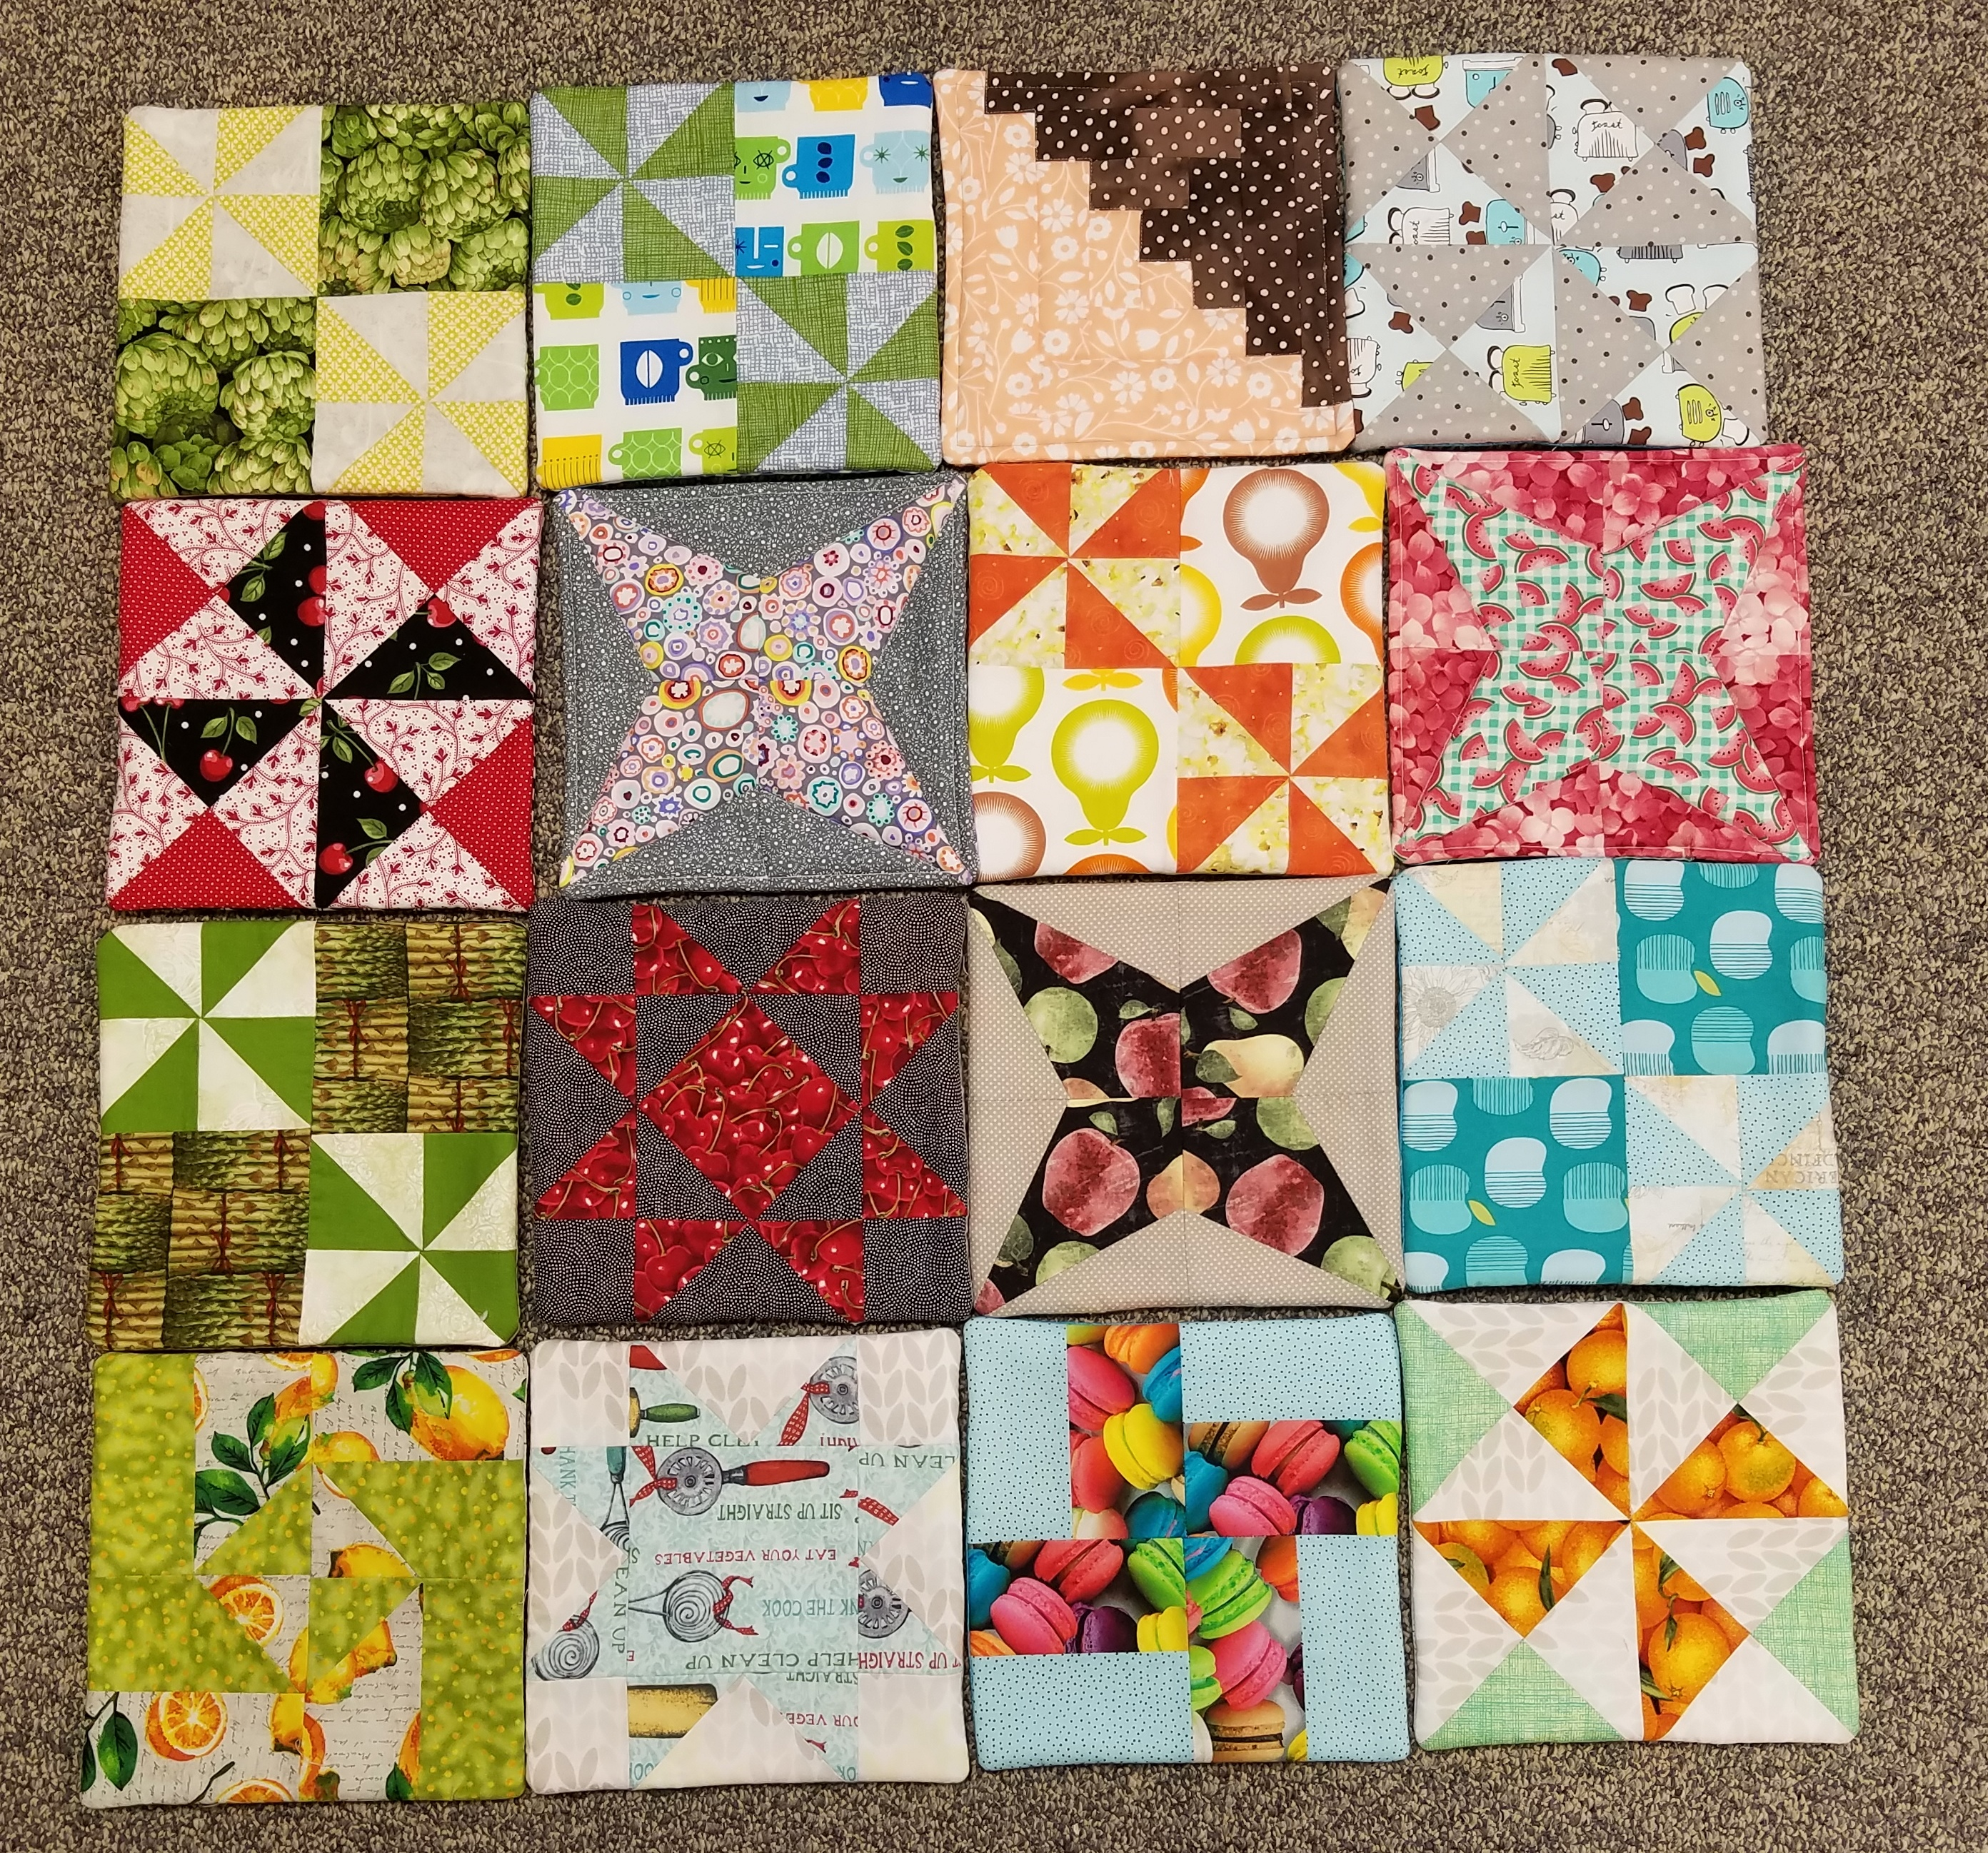 potholder project